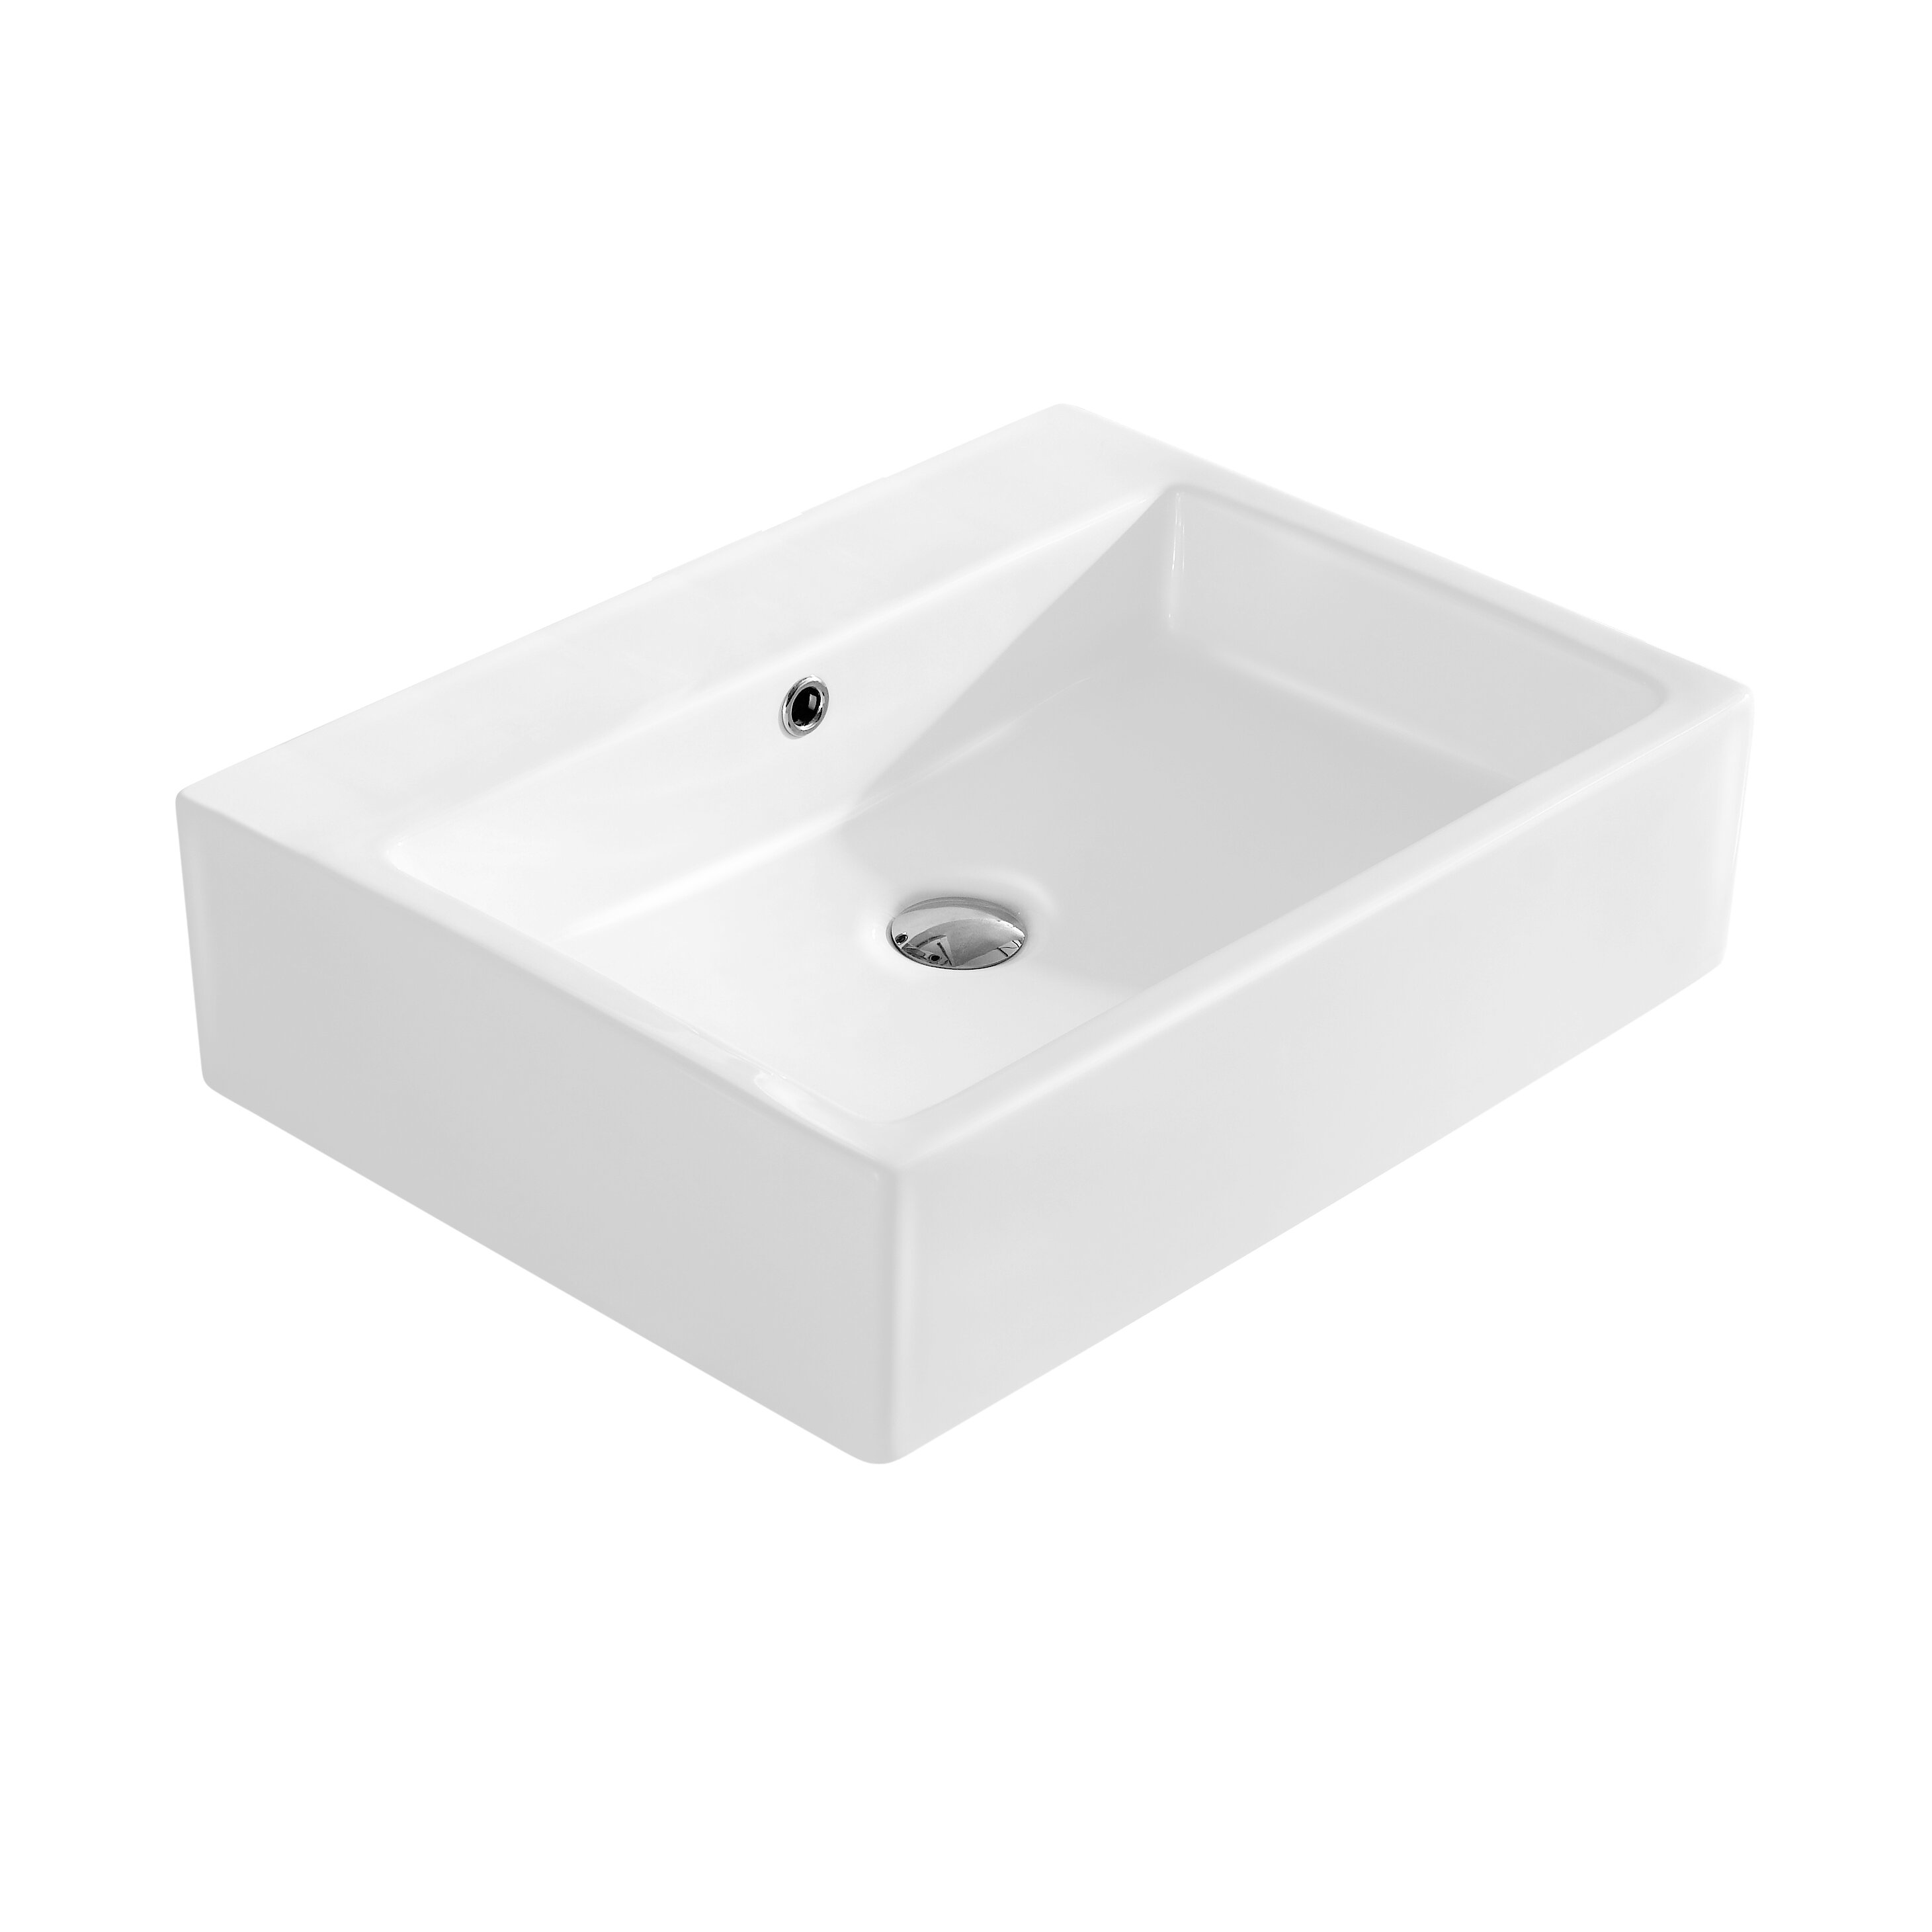 Rectangular Bathroom Sinks Fine Fixtures Modern Vitreous Rectangular Vessel Bathroom Sink